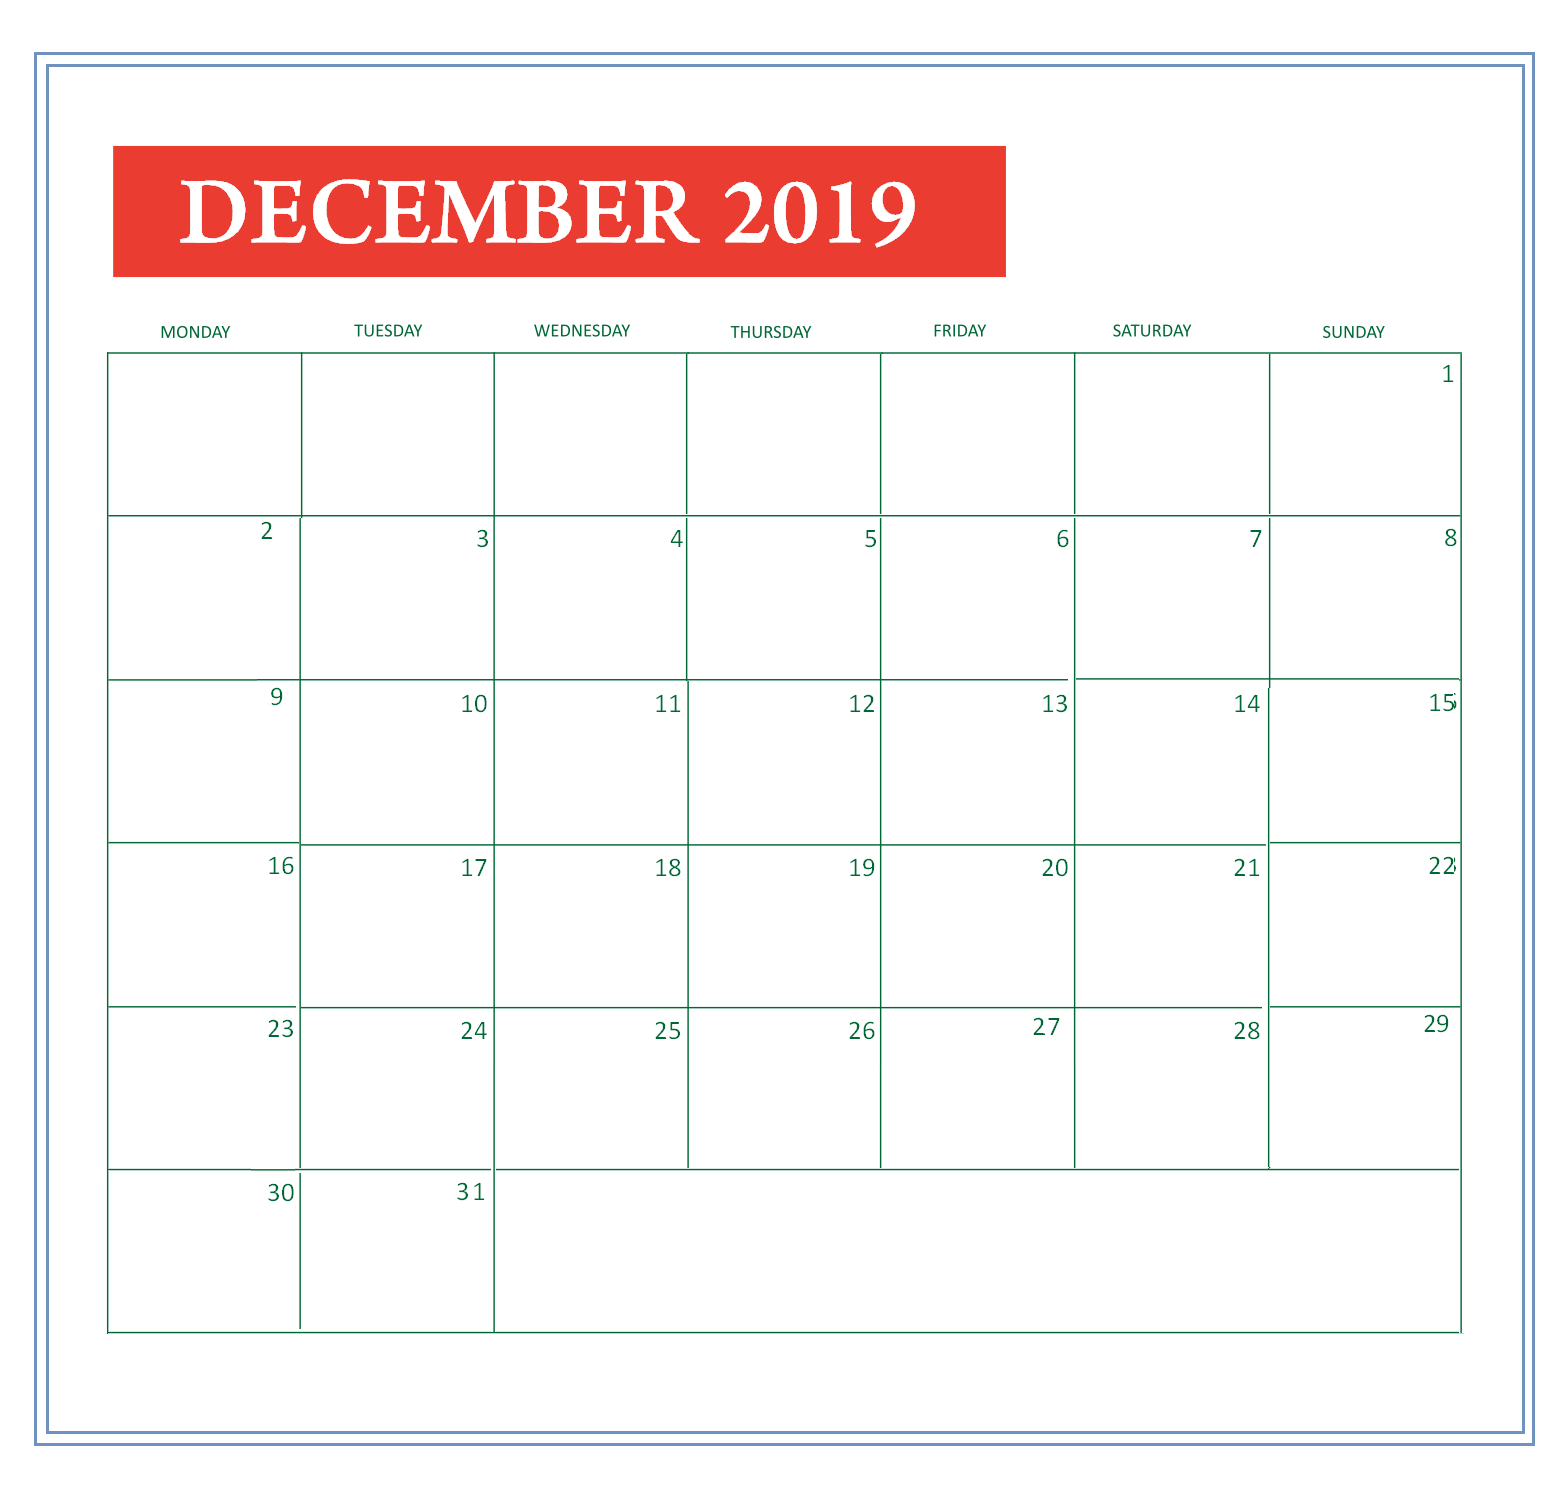 Customized December 2019 Calendar